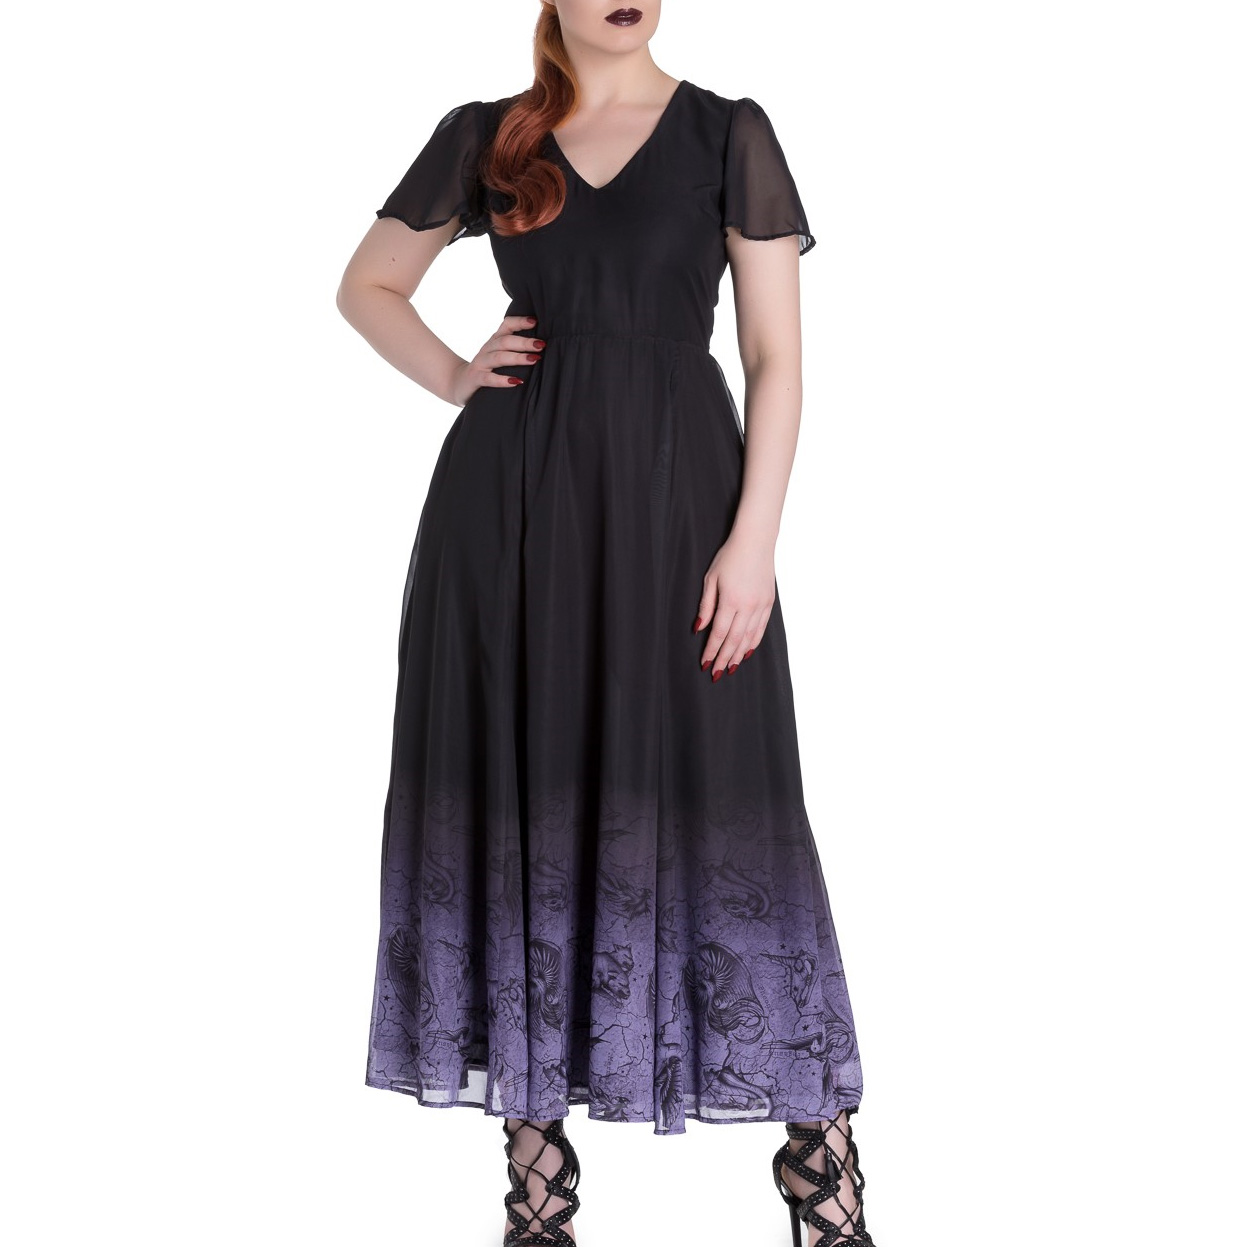 Hell-Bunny-Spin-Doctor-Goth-Maxi-Dress-EVADINE-Purple-Black-All-Sizes thumbnail 3